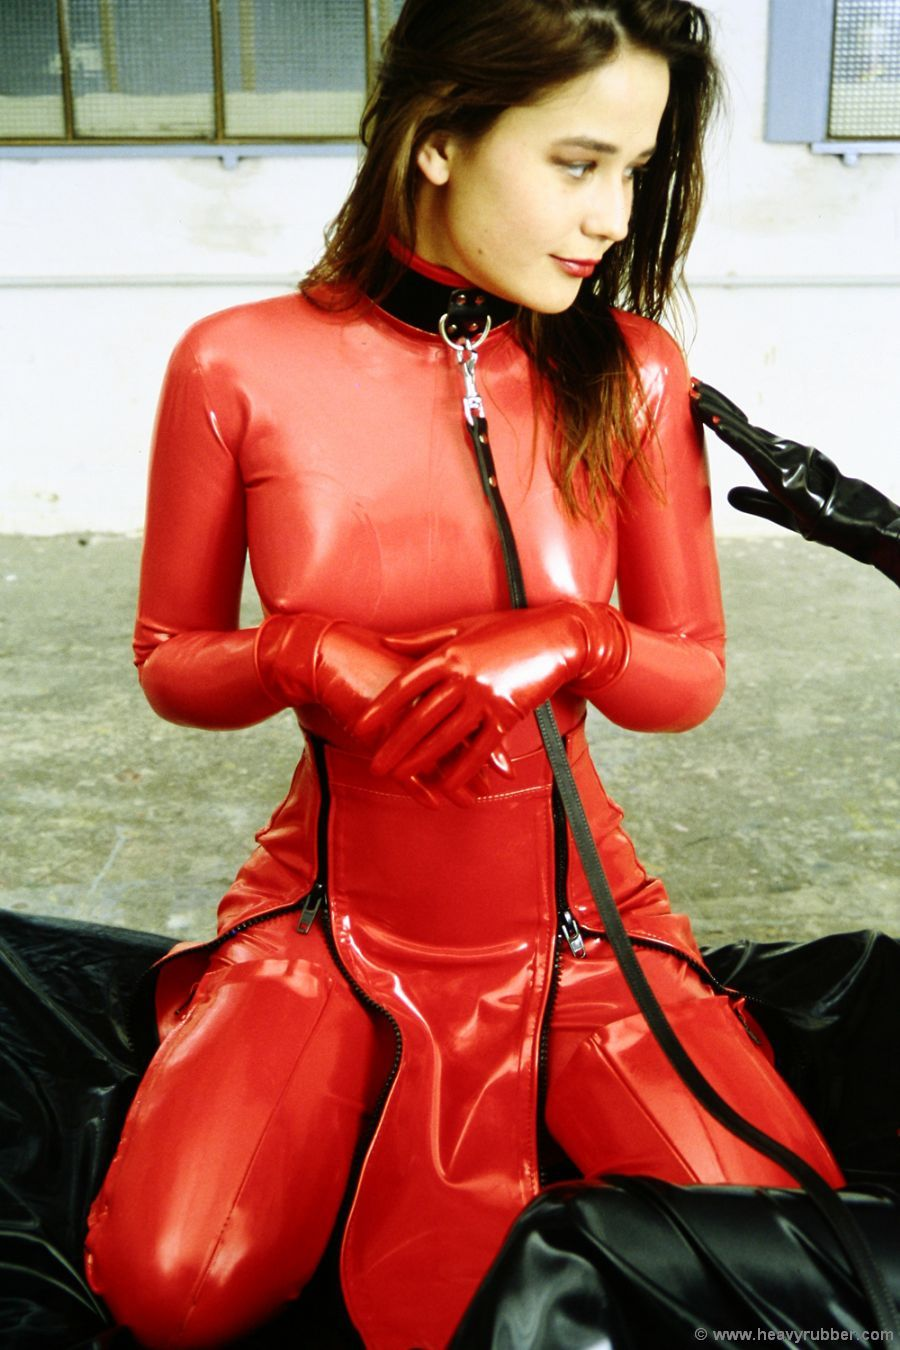 Bdsm nude girl pic 37